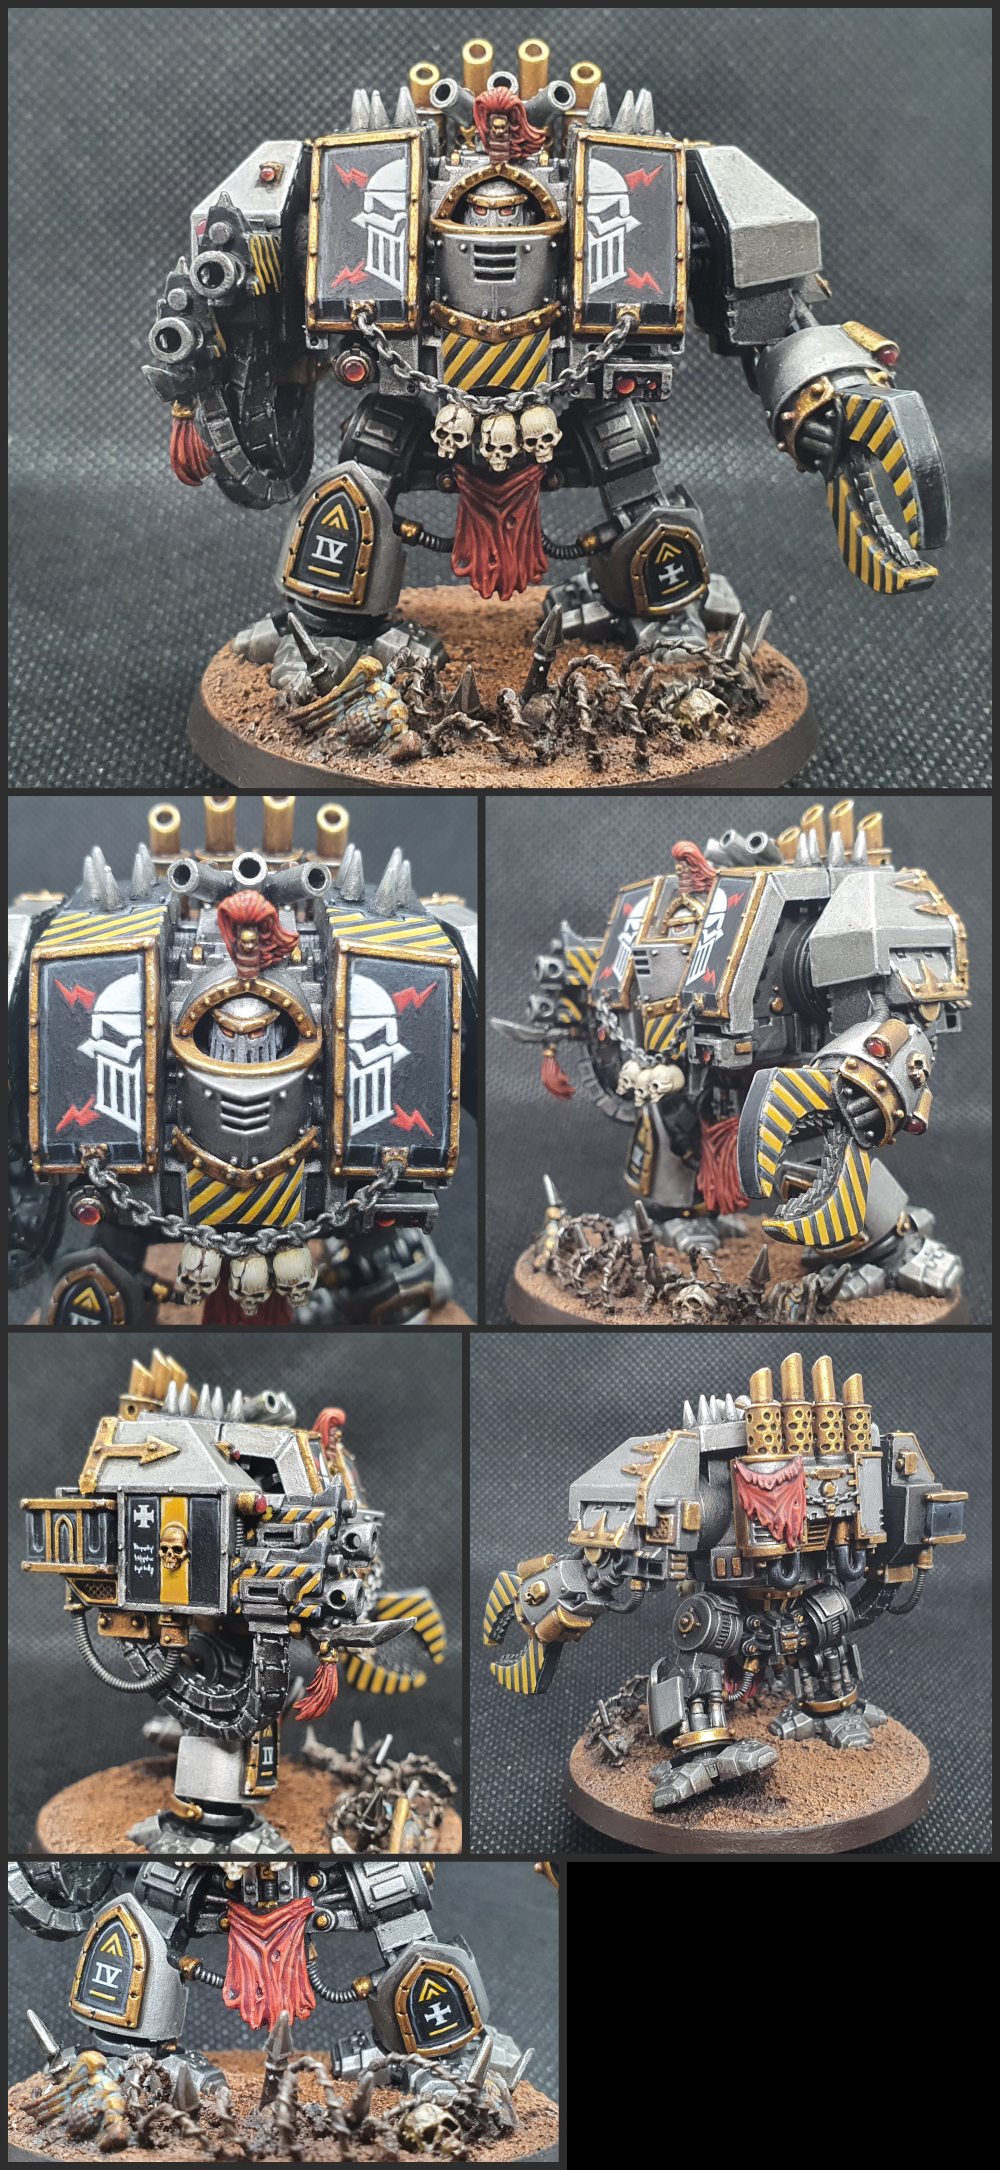 Base, Bolter, Chaos, Chaos Space Marines, Conversion, Detailed, Dreadnought, Helbrute, Hellbrute, Heretic Astartes, Iron Warriors, Kitbash, Skull, Warhammer 40,000